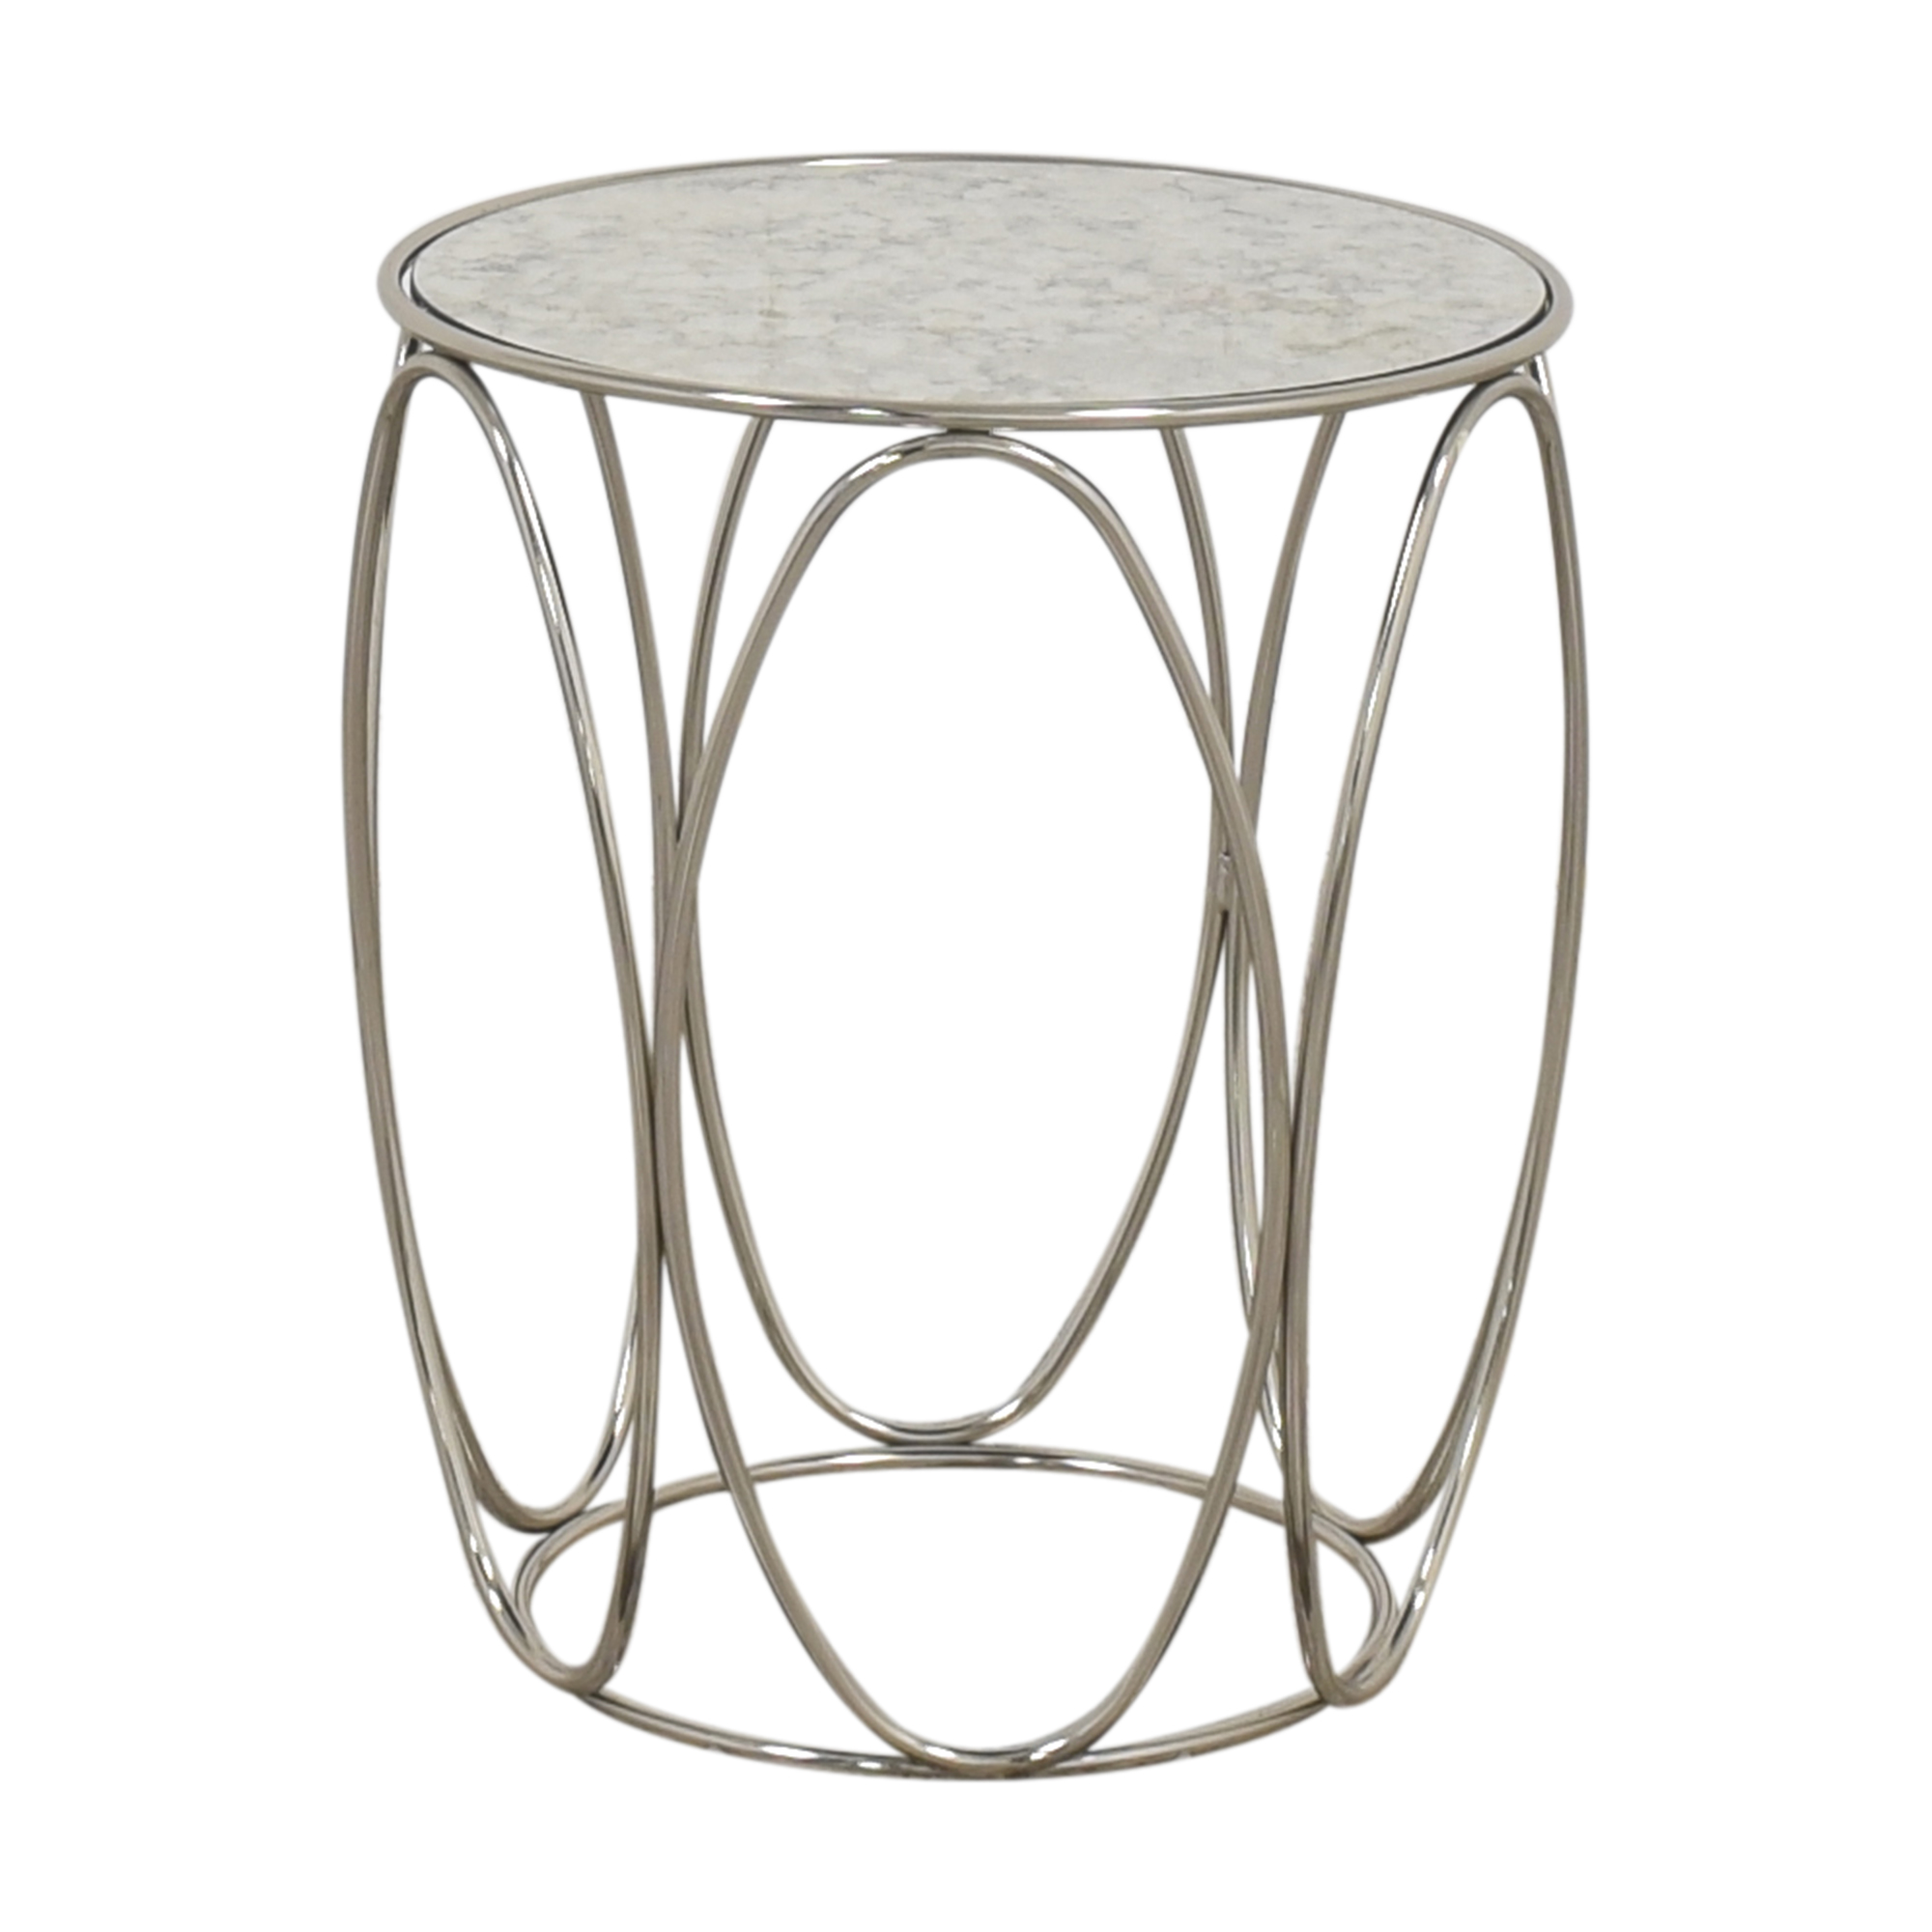 Crate & Barrel Crate & Barrel Modern Round End Table discount